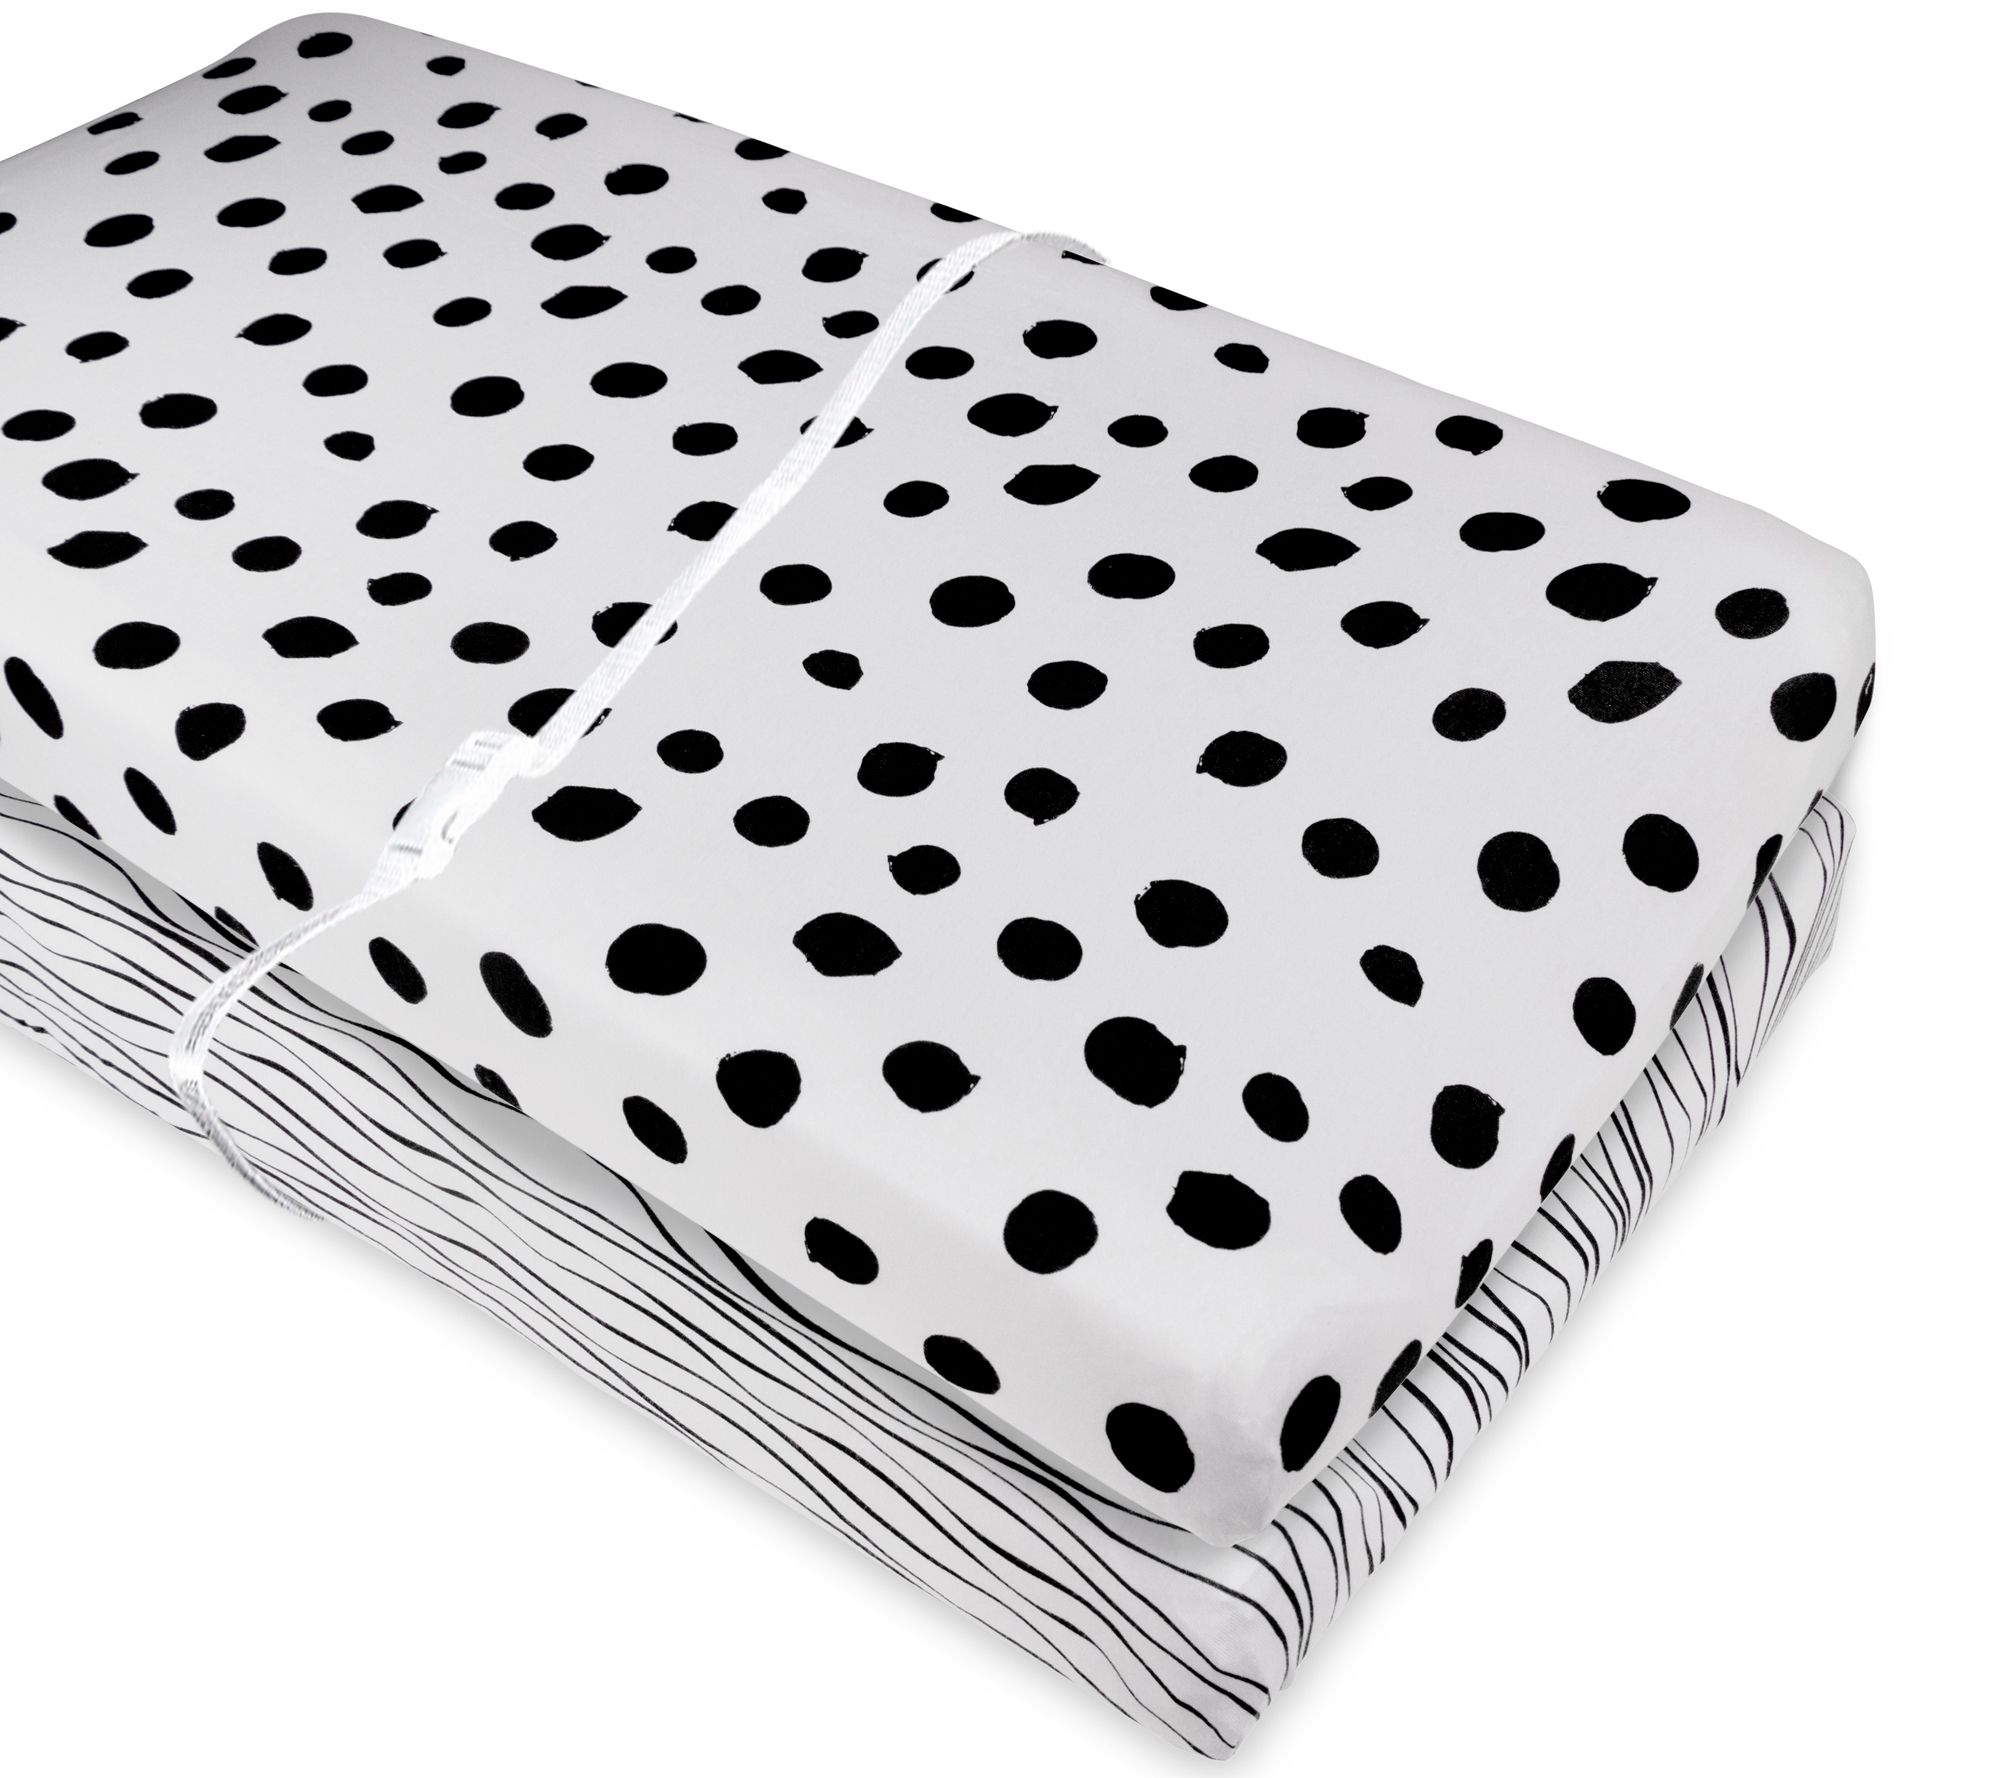 Jeep Deluxe Changing Pad